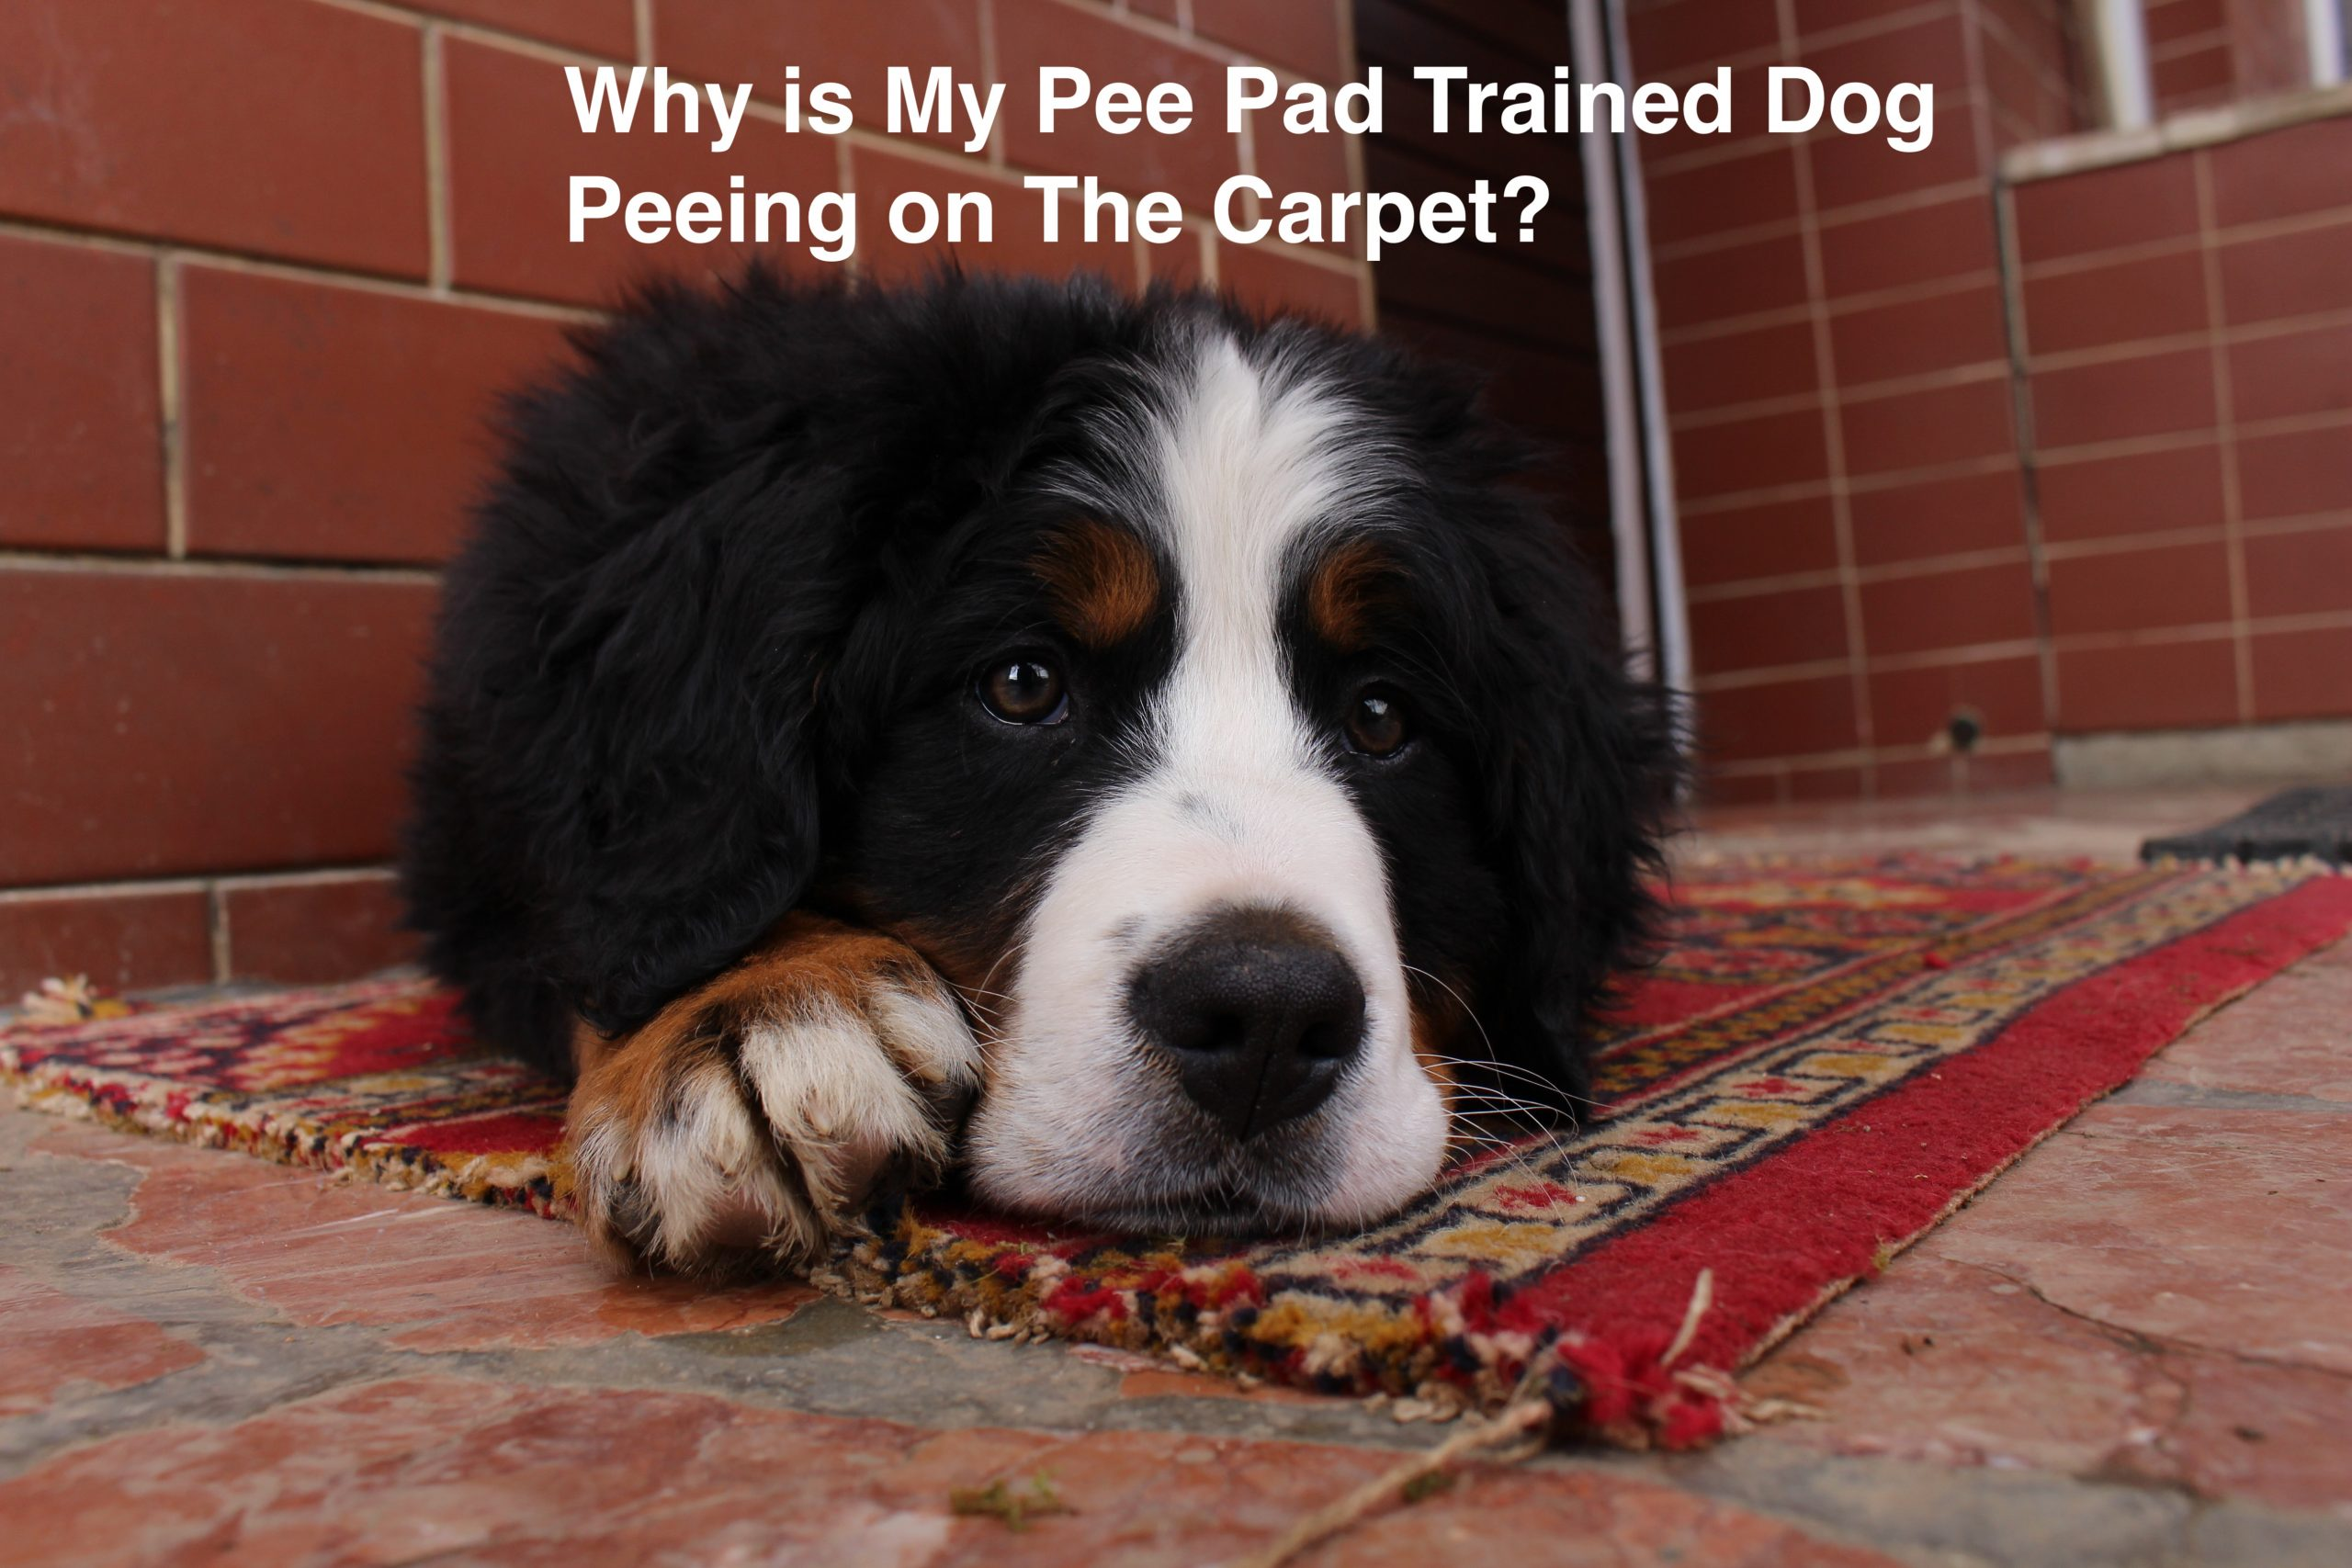 Why is My Pee Pad Trained Dog Peeing on The Carpet?